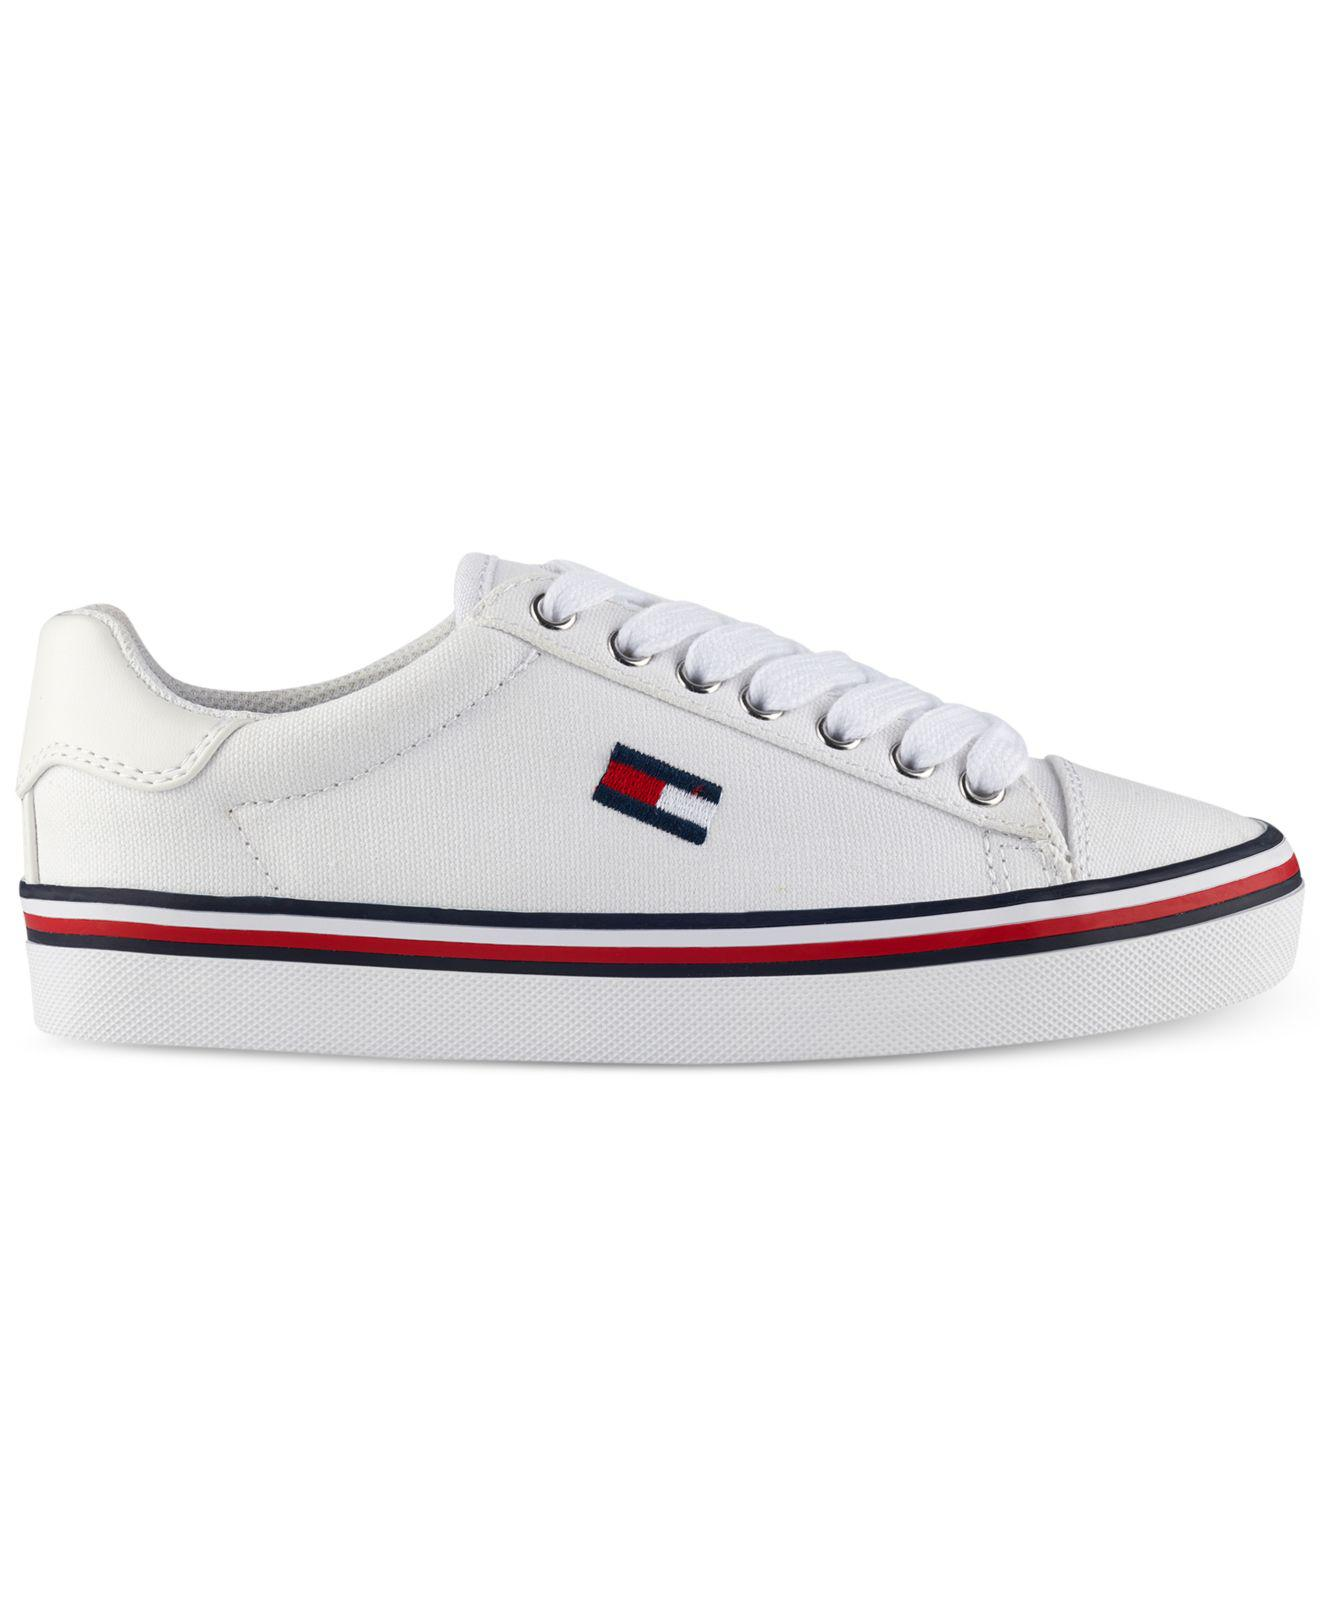 2da210deaf7d8 Lyst - Tommy Hilfiger Fressian Lace-up Sneakers in White